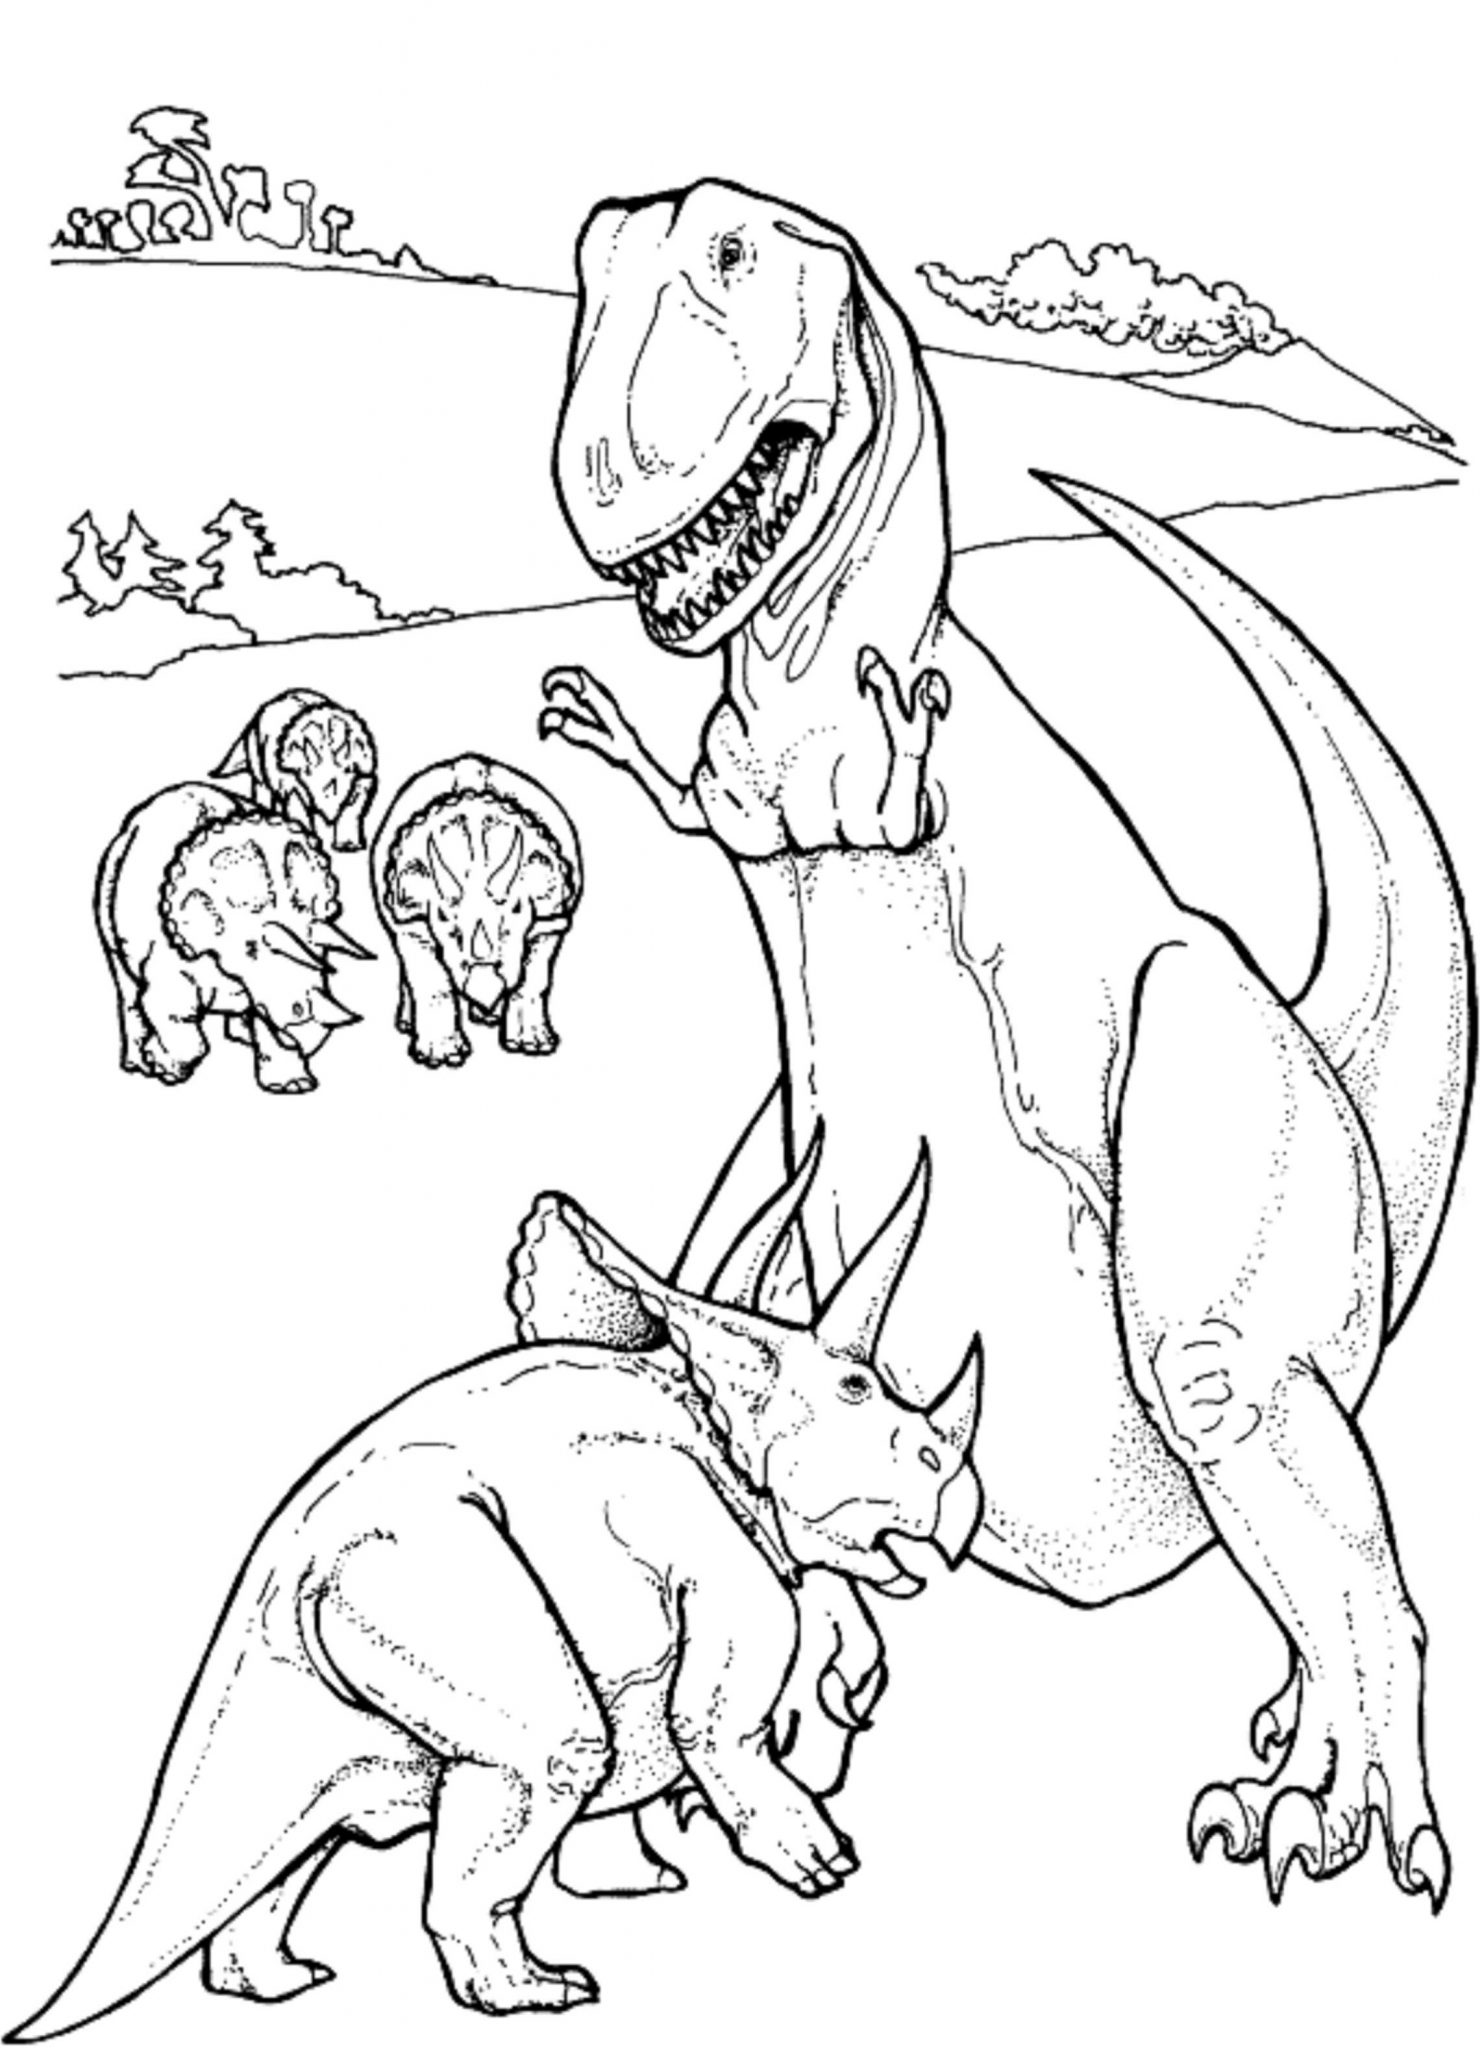 Dinosaur TRex Coloring Pages for Kids Best Apps For Kids